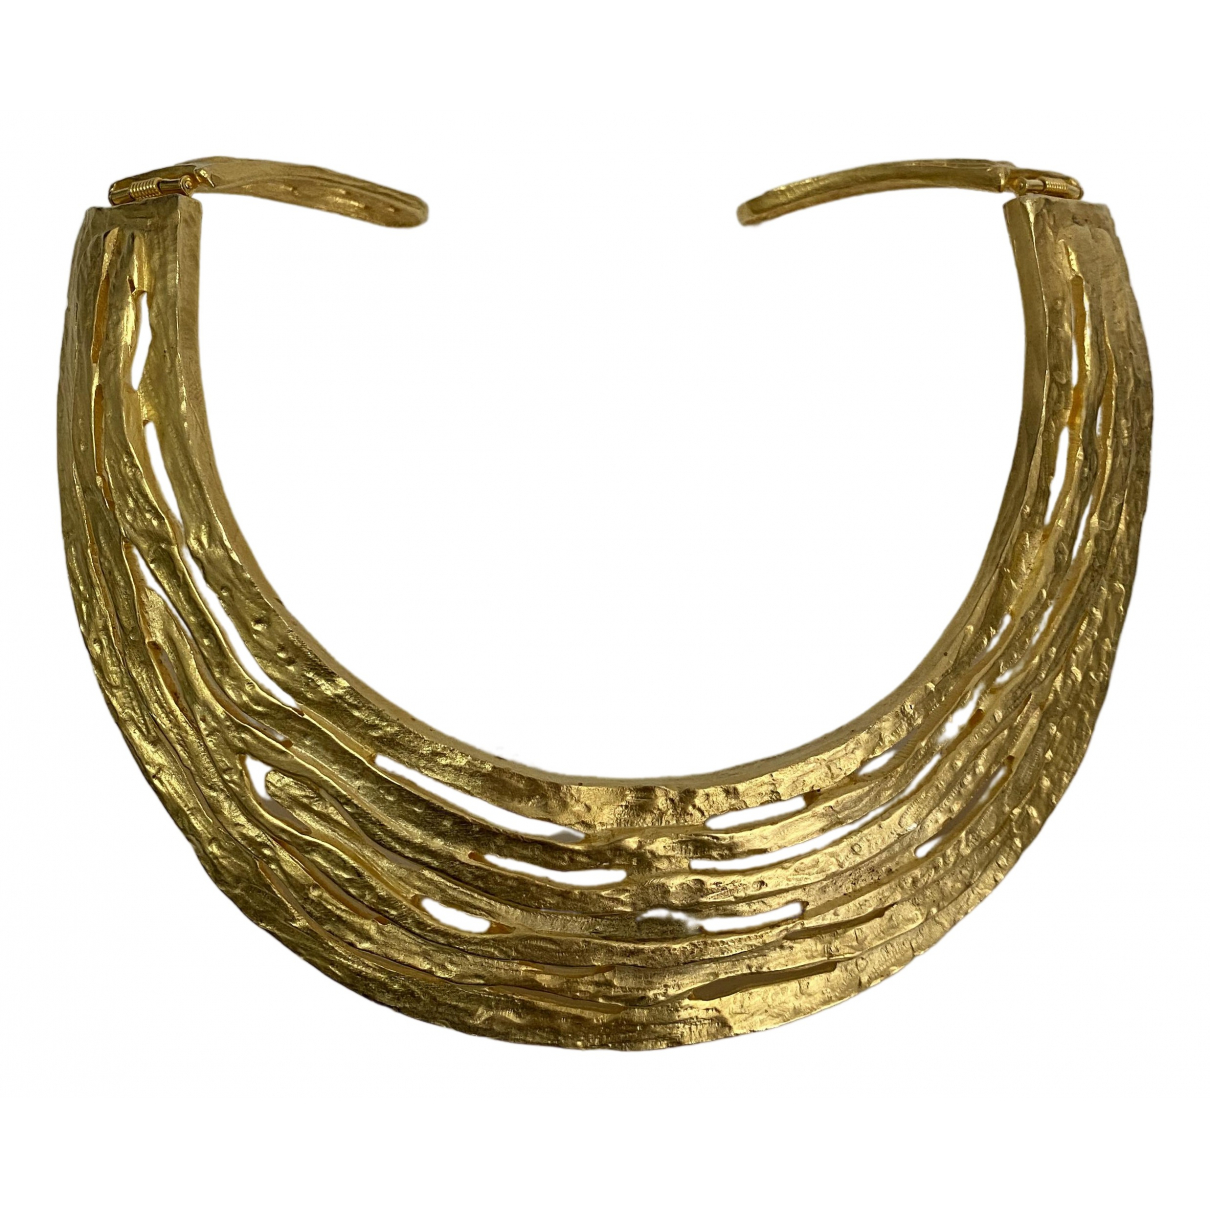 Kenneth Jay Lane \N Gold Metal necklace for Women \N